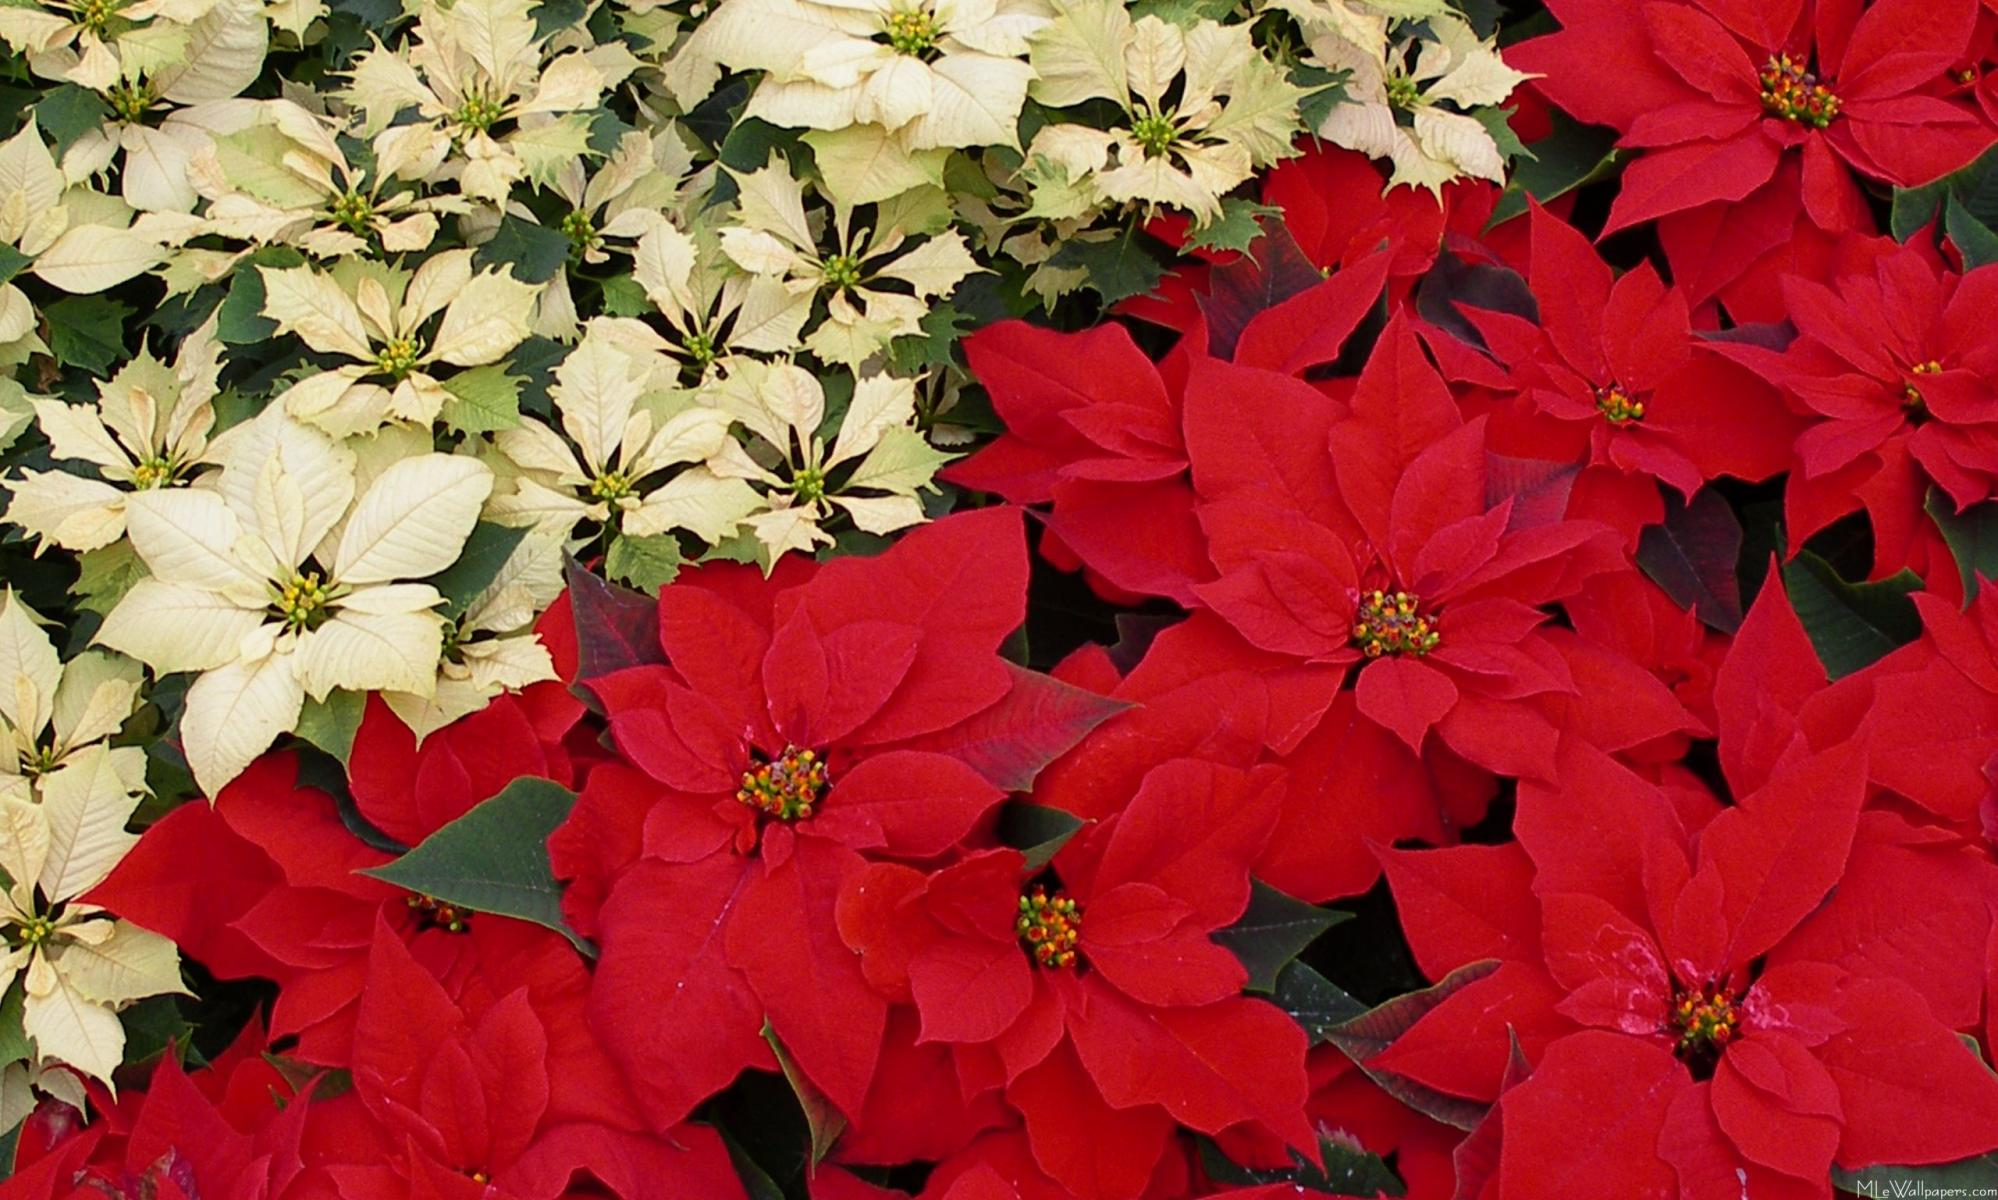 Poinsettia Pictures of flowers